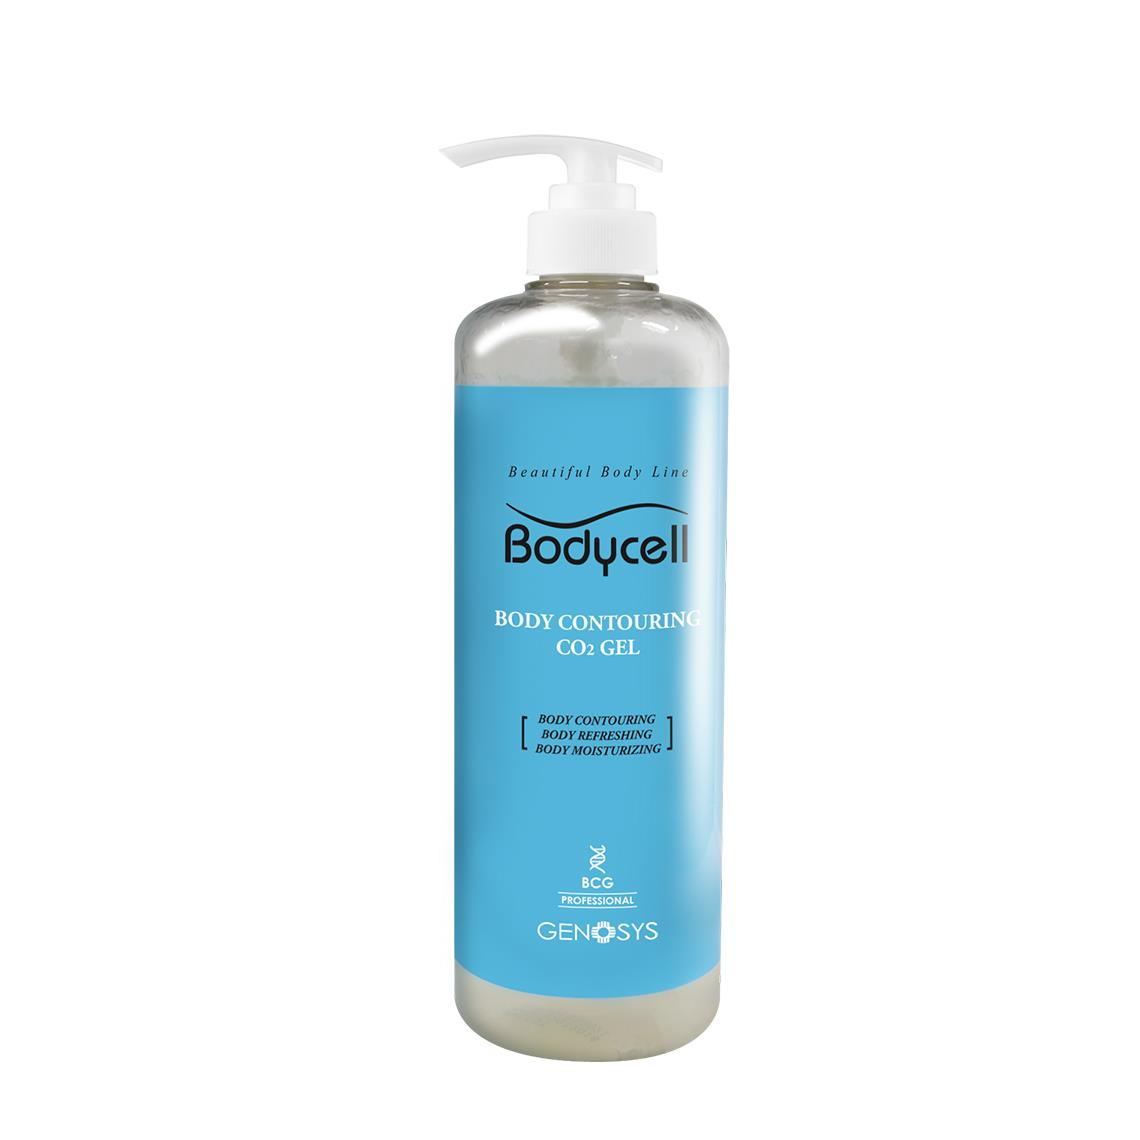 Bodycell Body Contouring CO2 Gel 1000 ml.